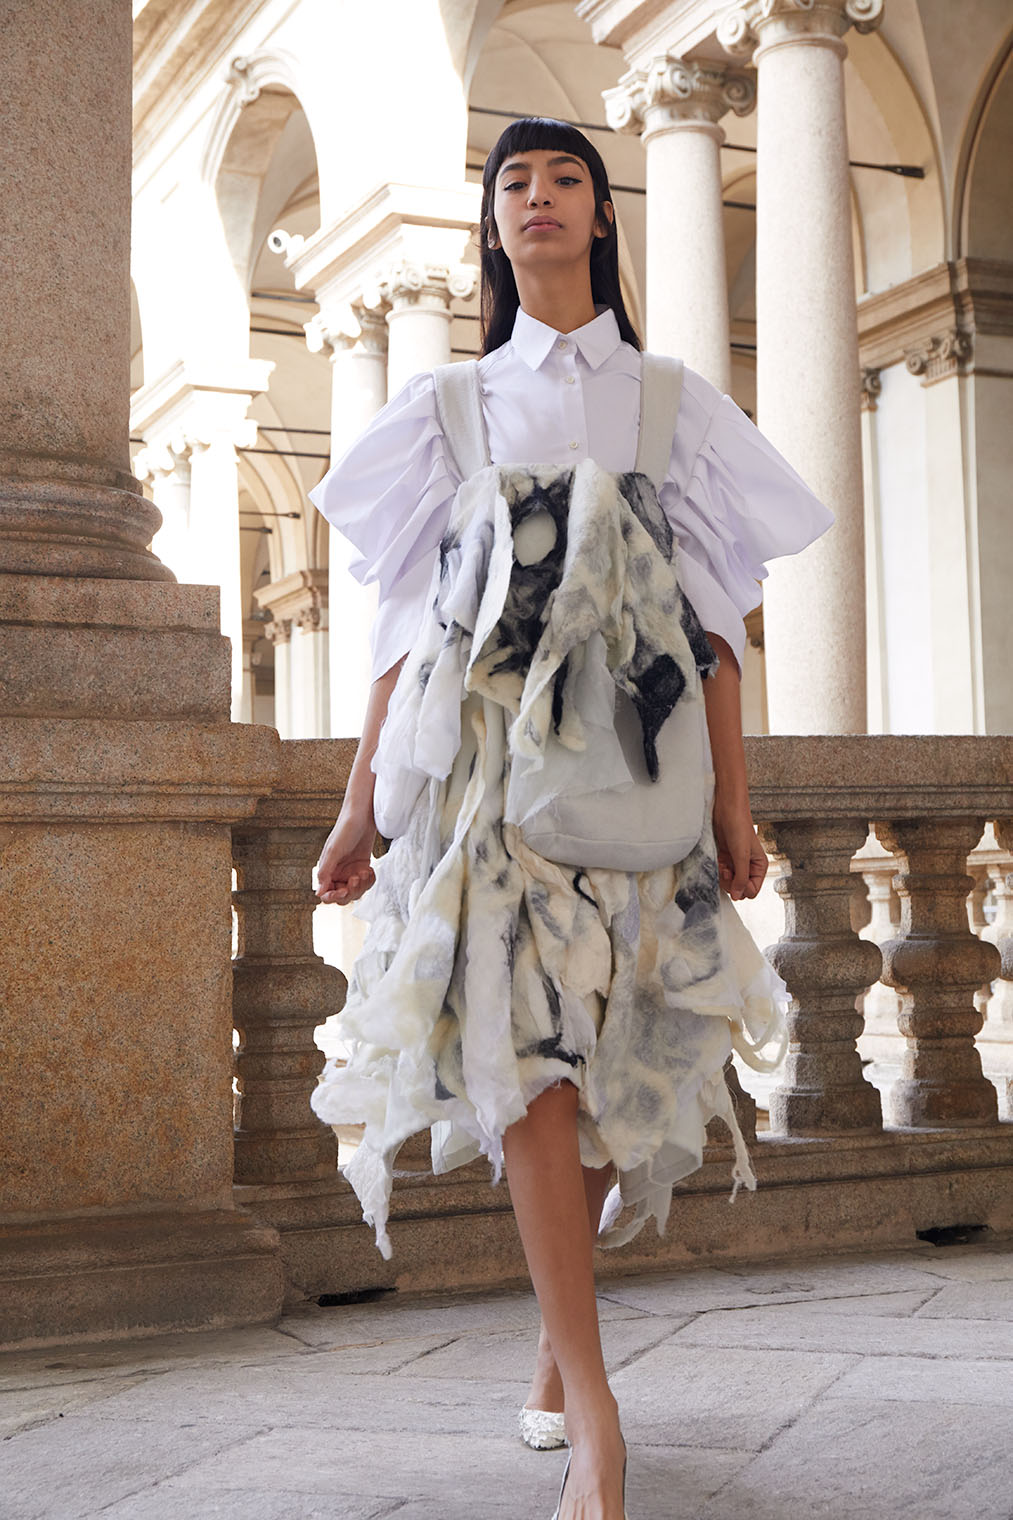 fashion model in faux fur avantgarde design walking in Renaissance chateau in Milan, Italy in fashion editorial campaign